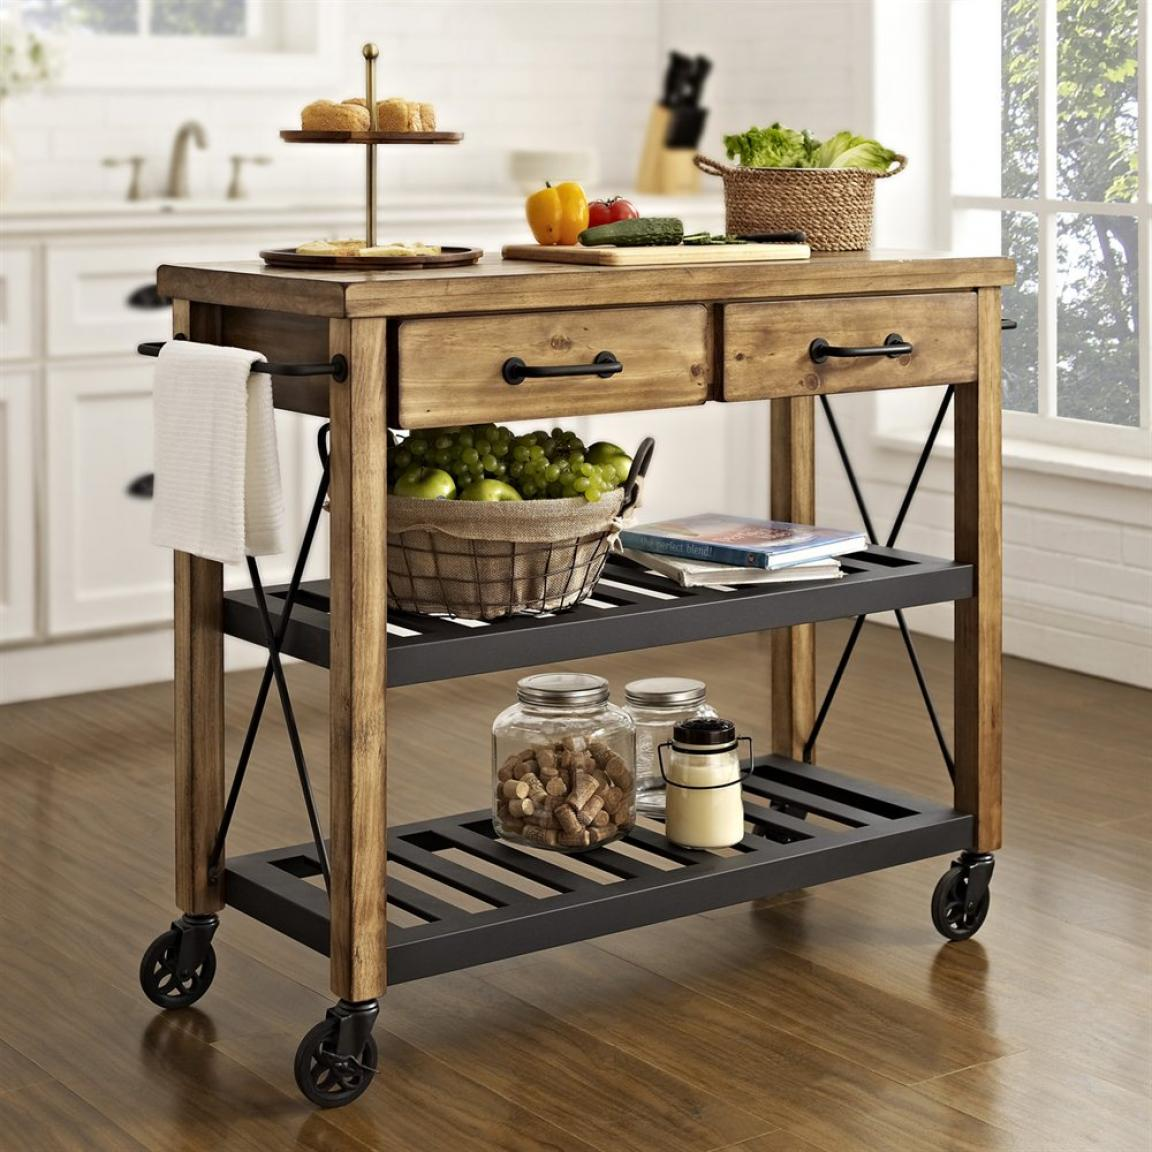 alluring-diy-kitchen-island-cart-on-wheels